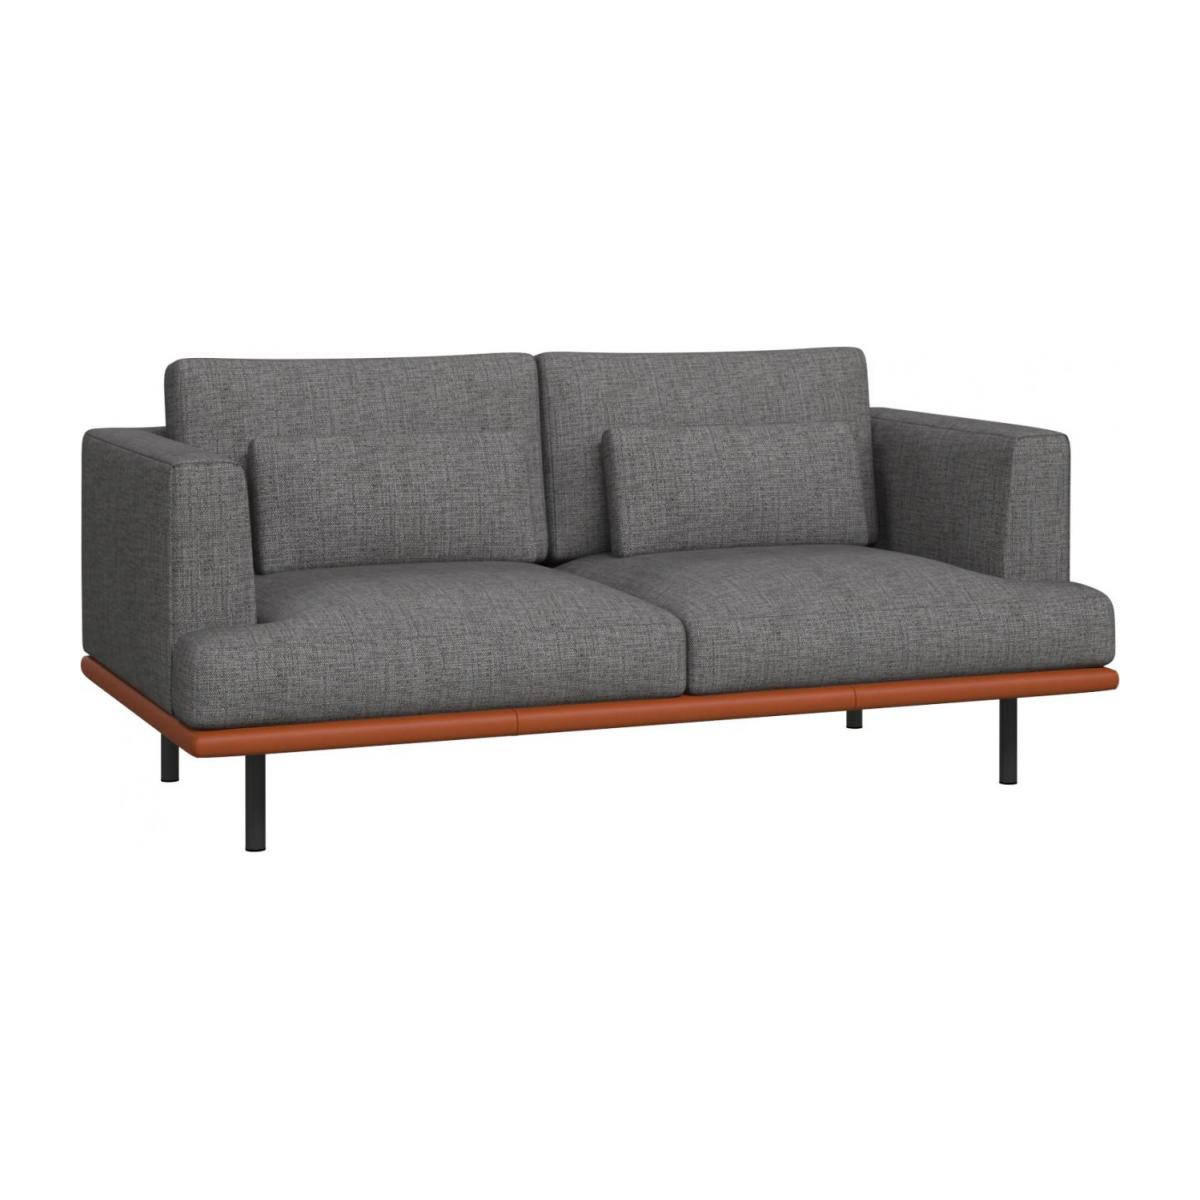 2-seter sofa Ancio river rock med base i brun skinn n°1